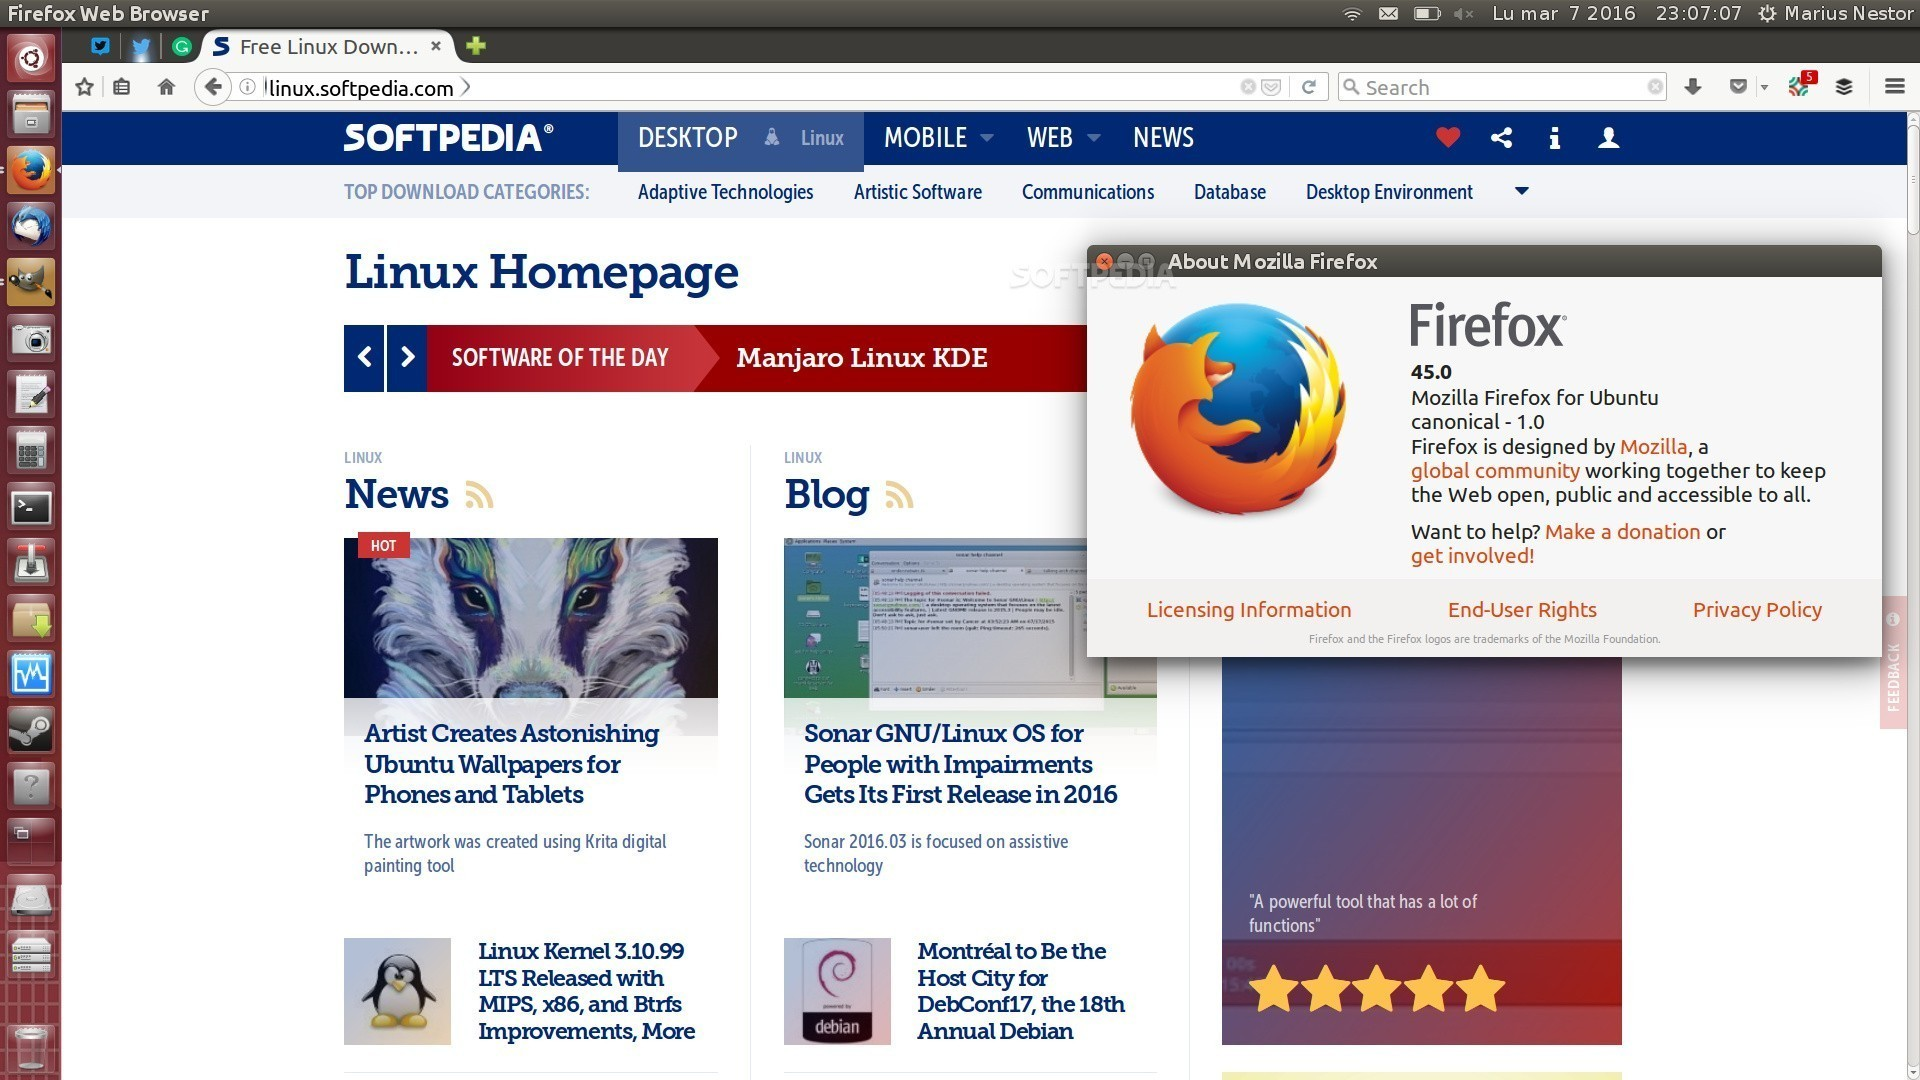 Mozilla Firefox 45 0 2 Released for Linux, Windows & Mac OS X with